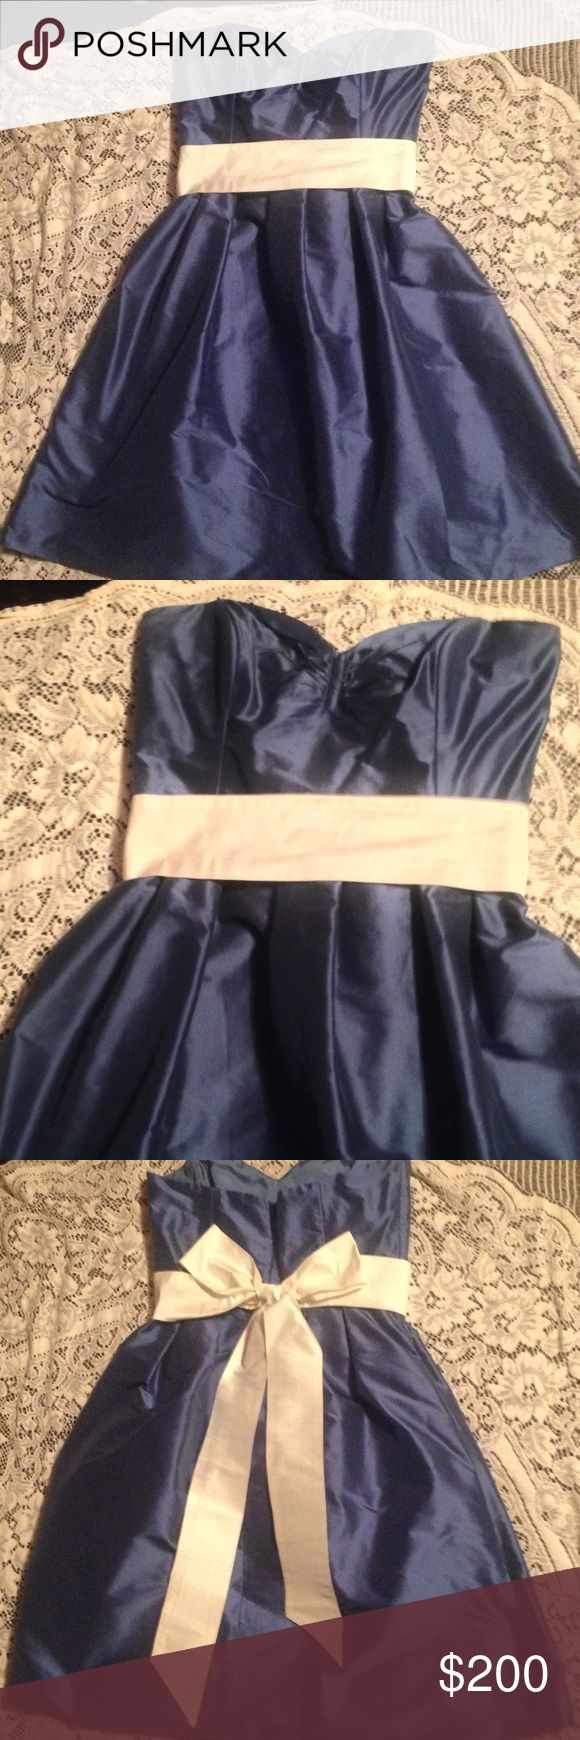 Coren Moore Nolan Silk Shantung Dress Riveiera A break taking bridesmaid dress by Coren Moore New York. Worn only in a wedding. Flat waist- 14 3/4 inches, bust to hem of skirt- 31 inches. Lined, and has two sizable pockets! Coren Moore Dresses Strapless